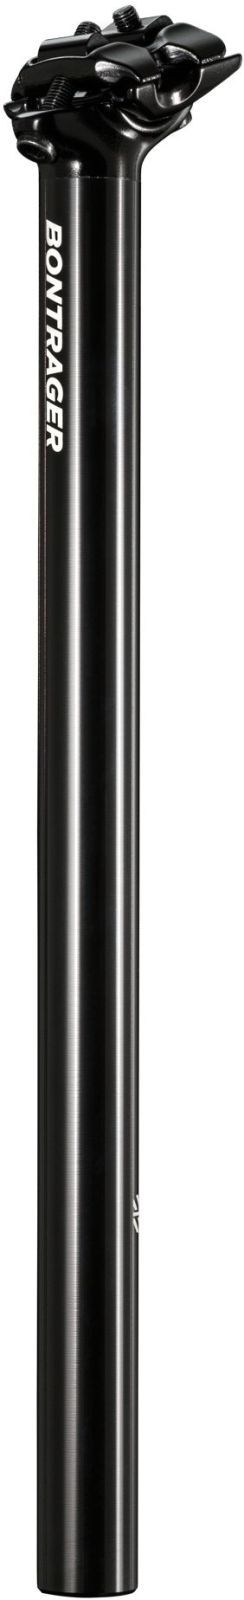 Bontrager Comp Seatpost 27.2/8mm Ofset - black 330mm